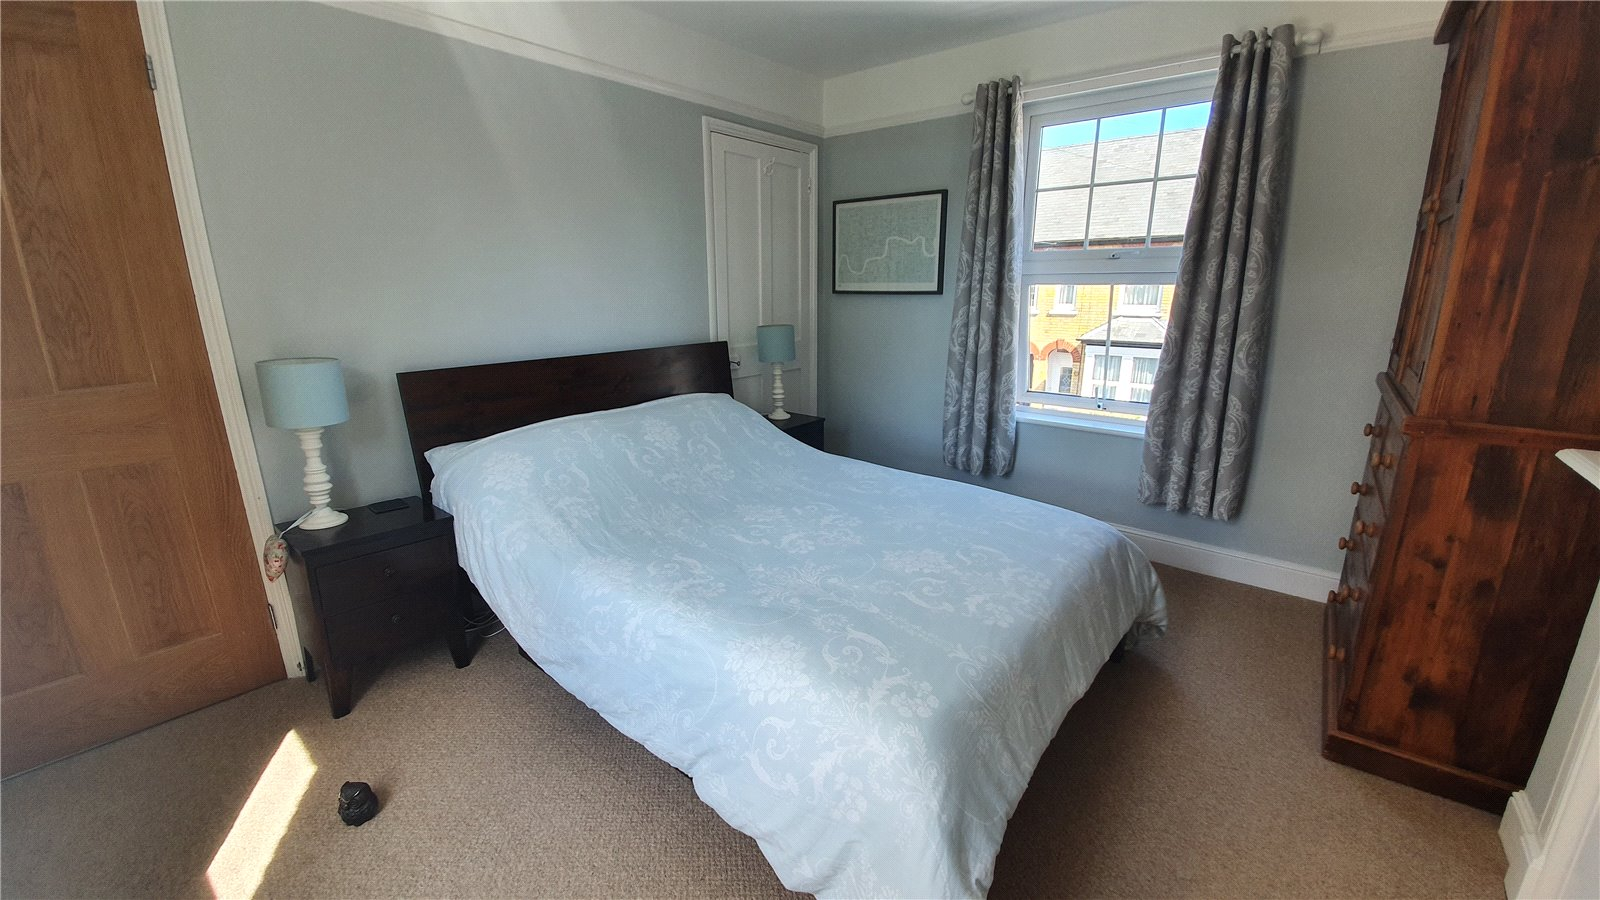 3 bed house for sale in Shaftesbury Avenue, St. Neots 7